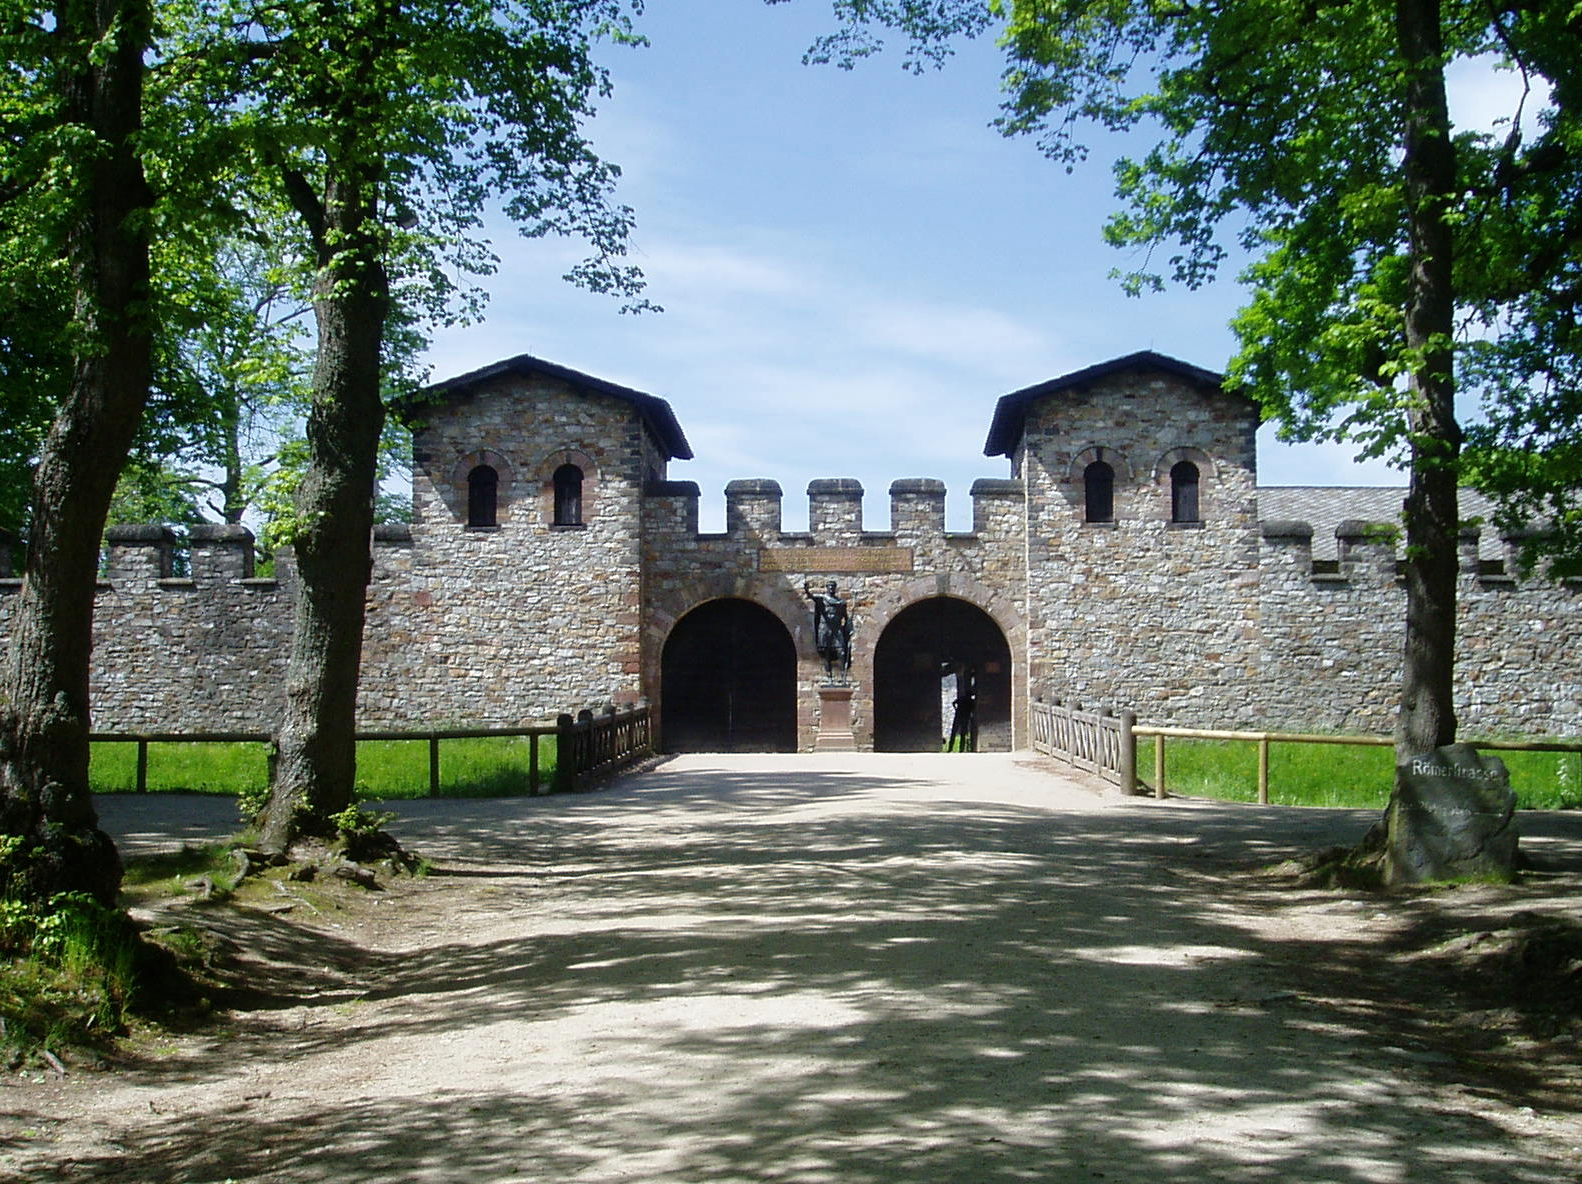 Lengeschäft Bad Homburg ancient forts in germany